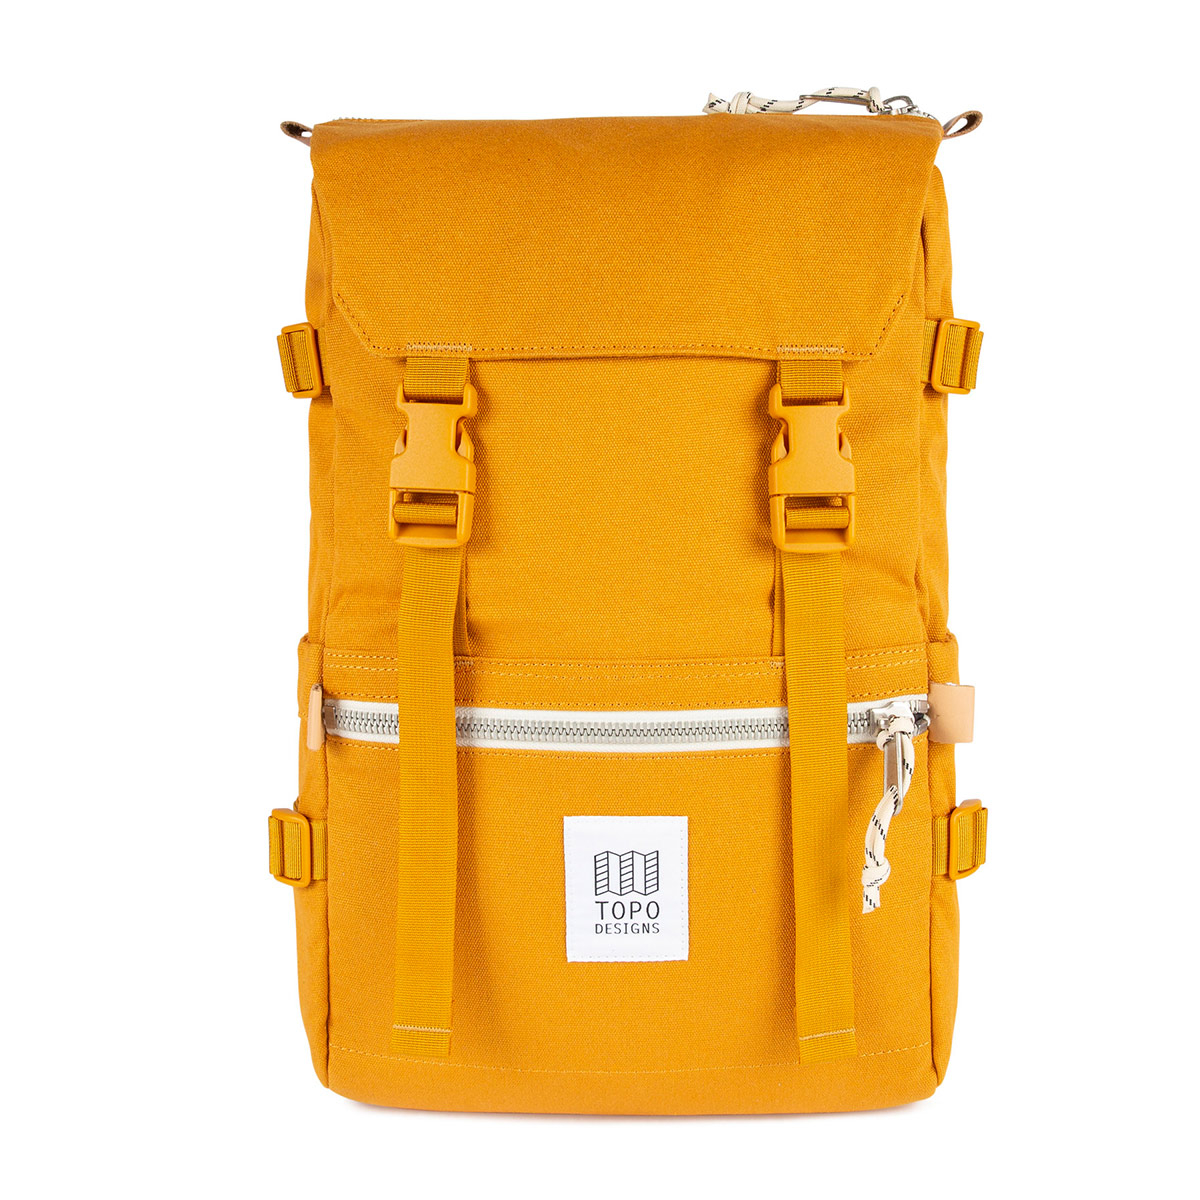 Topo Designs Rover Pack Canvas Yellow, Mountain-inspired durability meets city-ready styling in the Rover Pack Canvas.